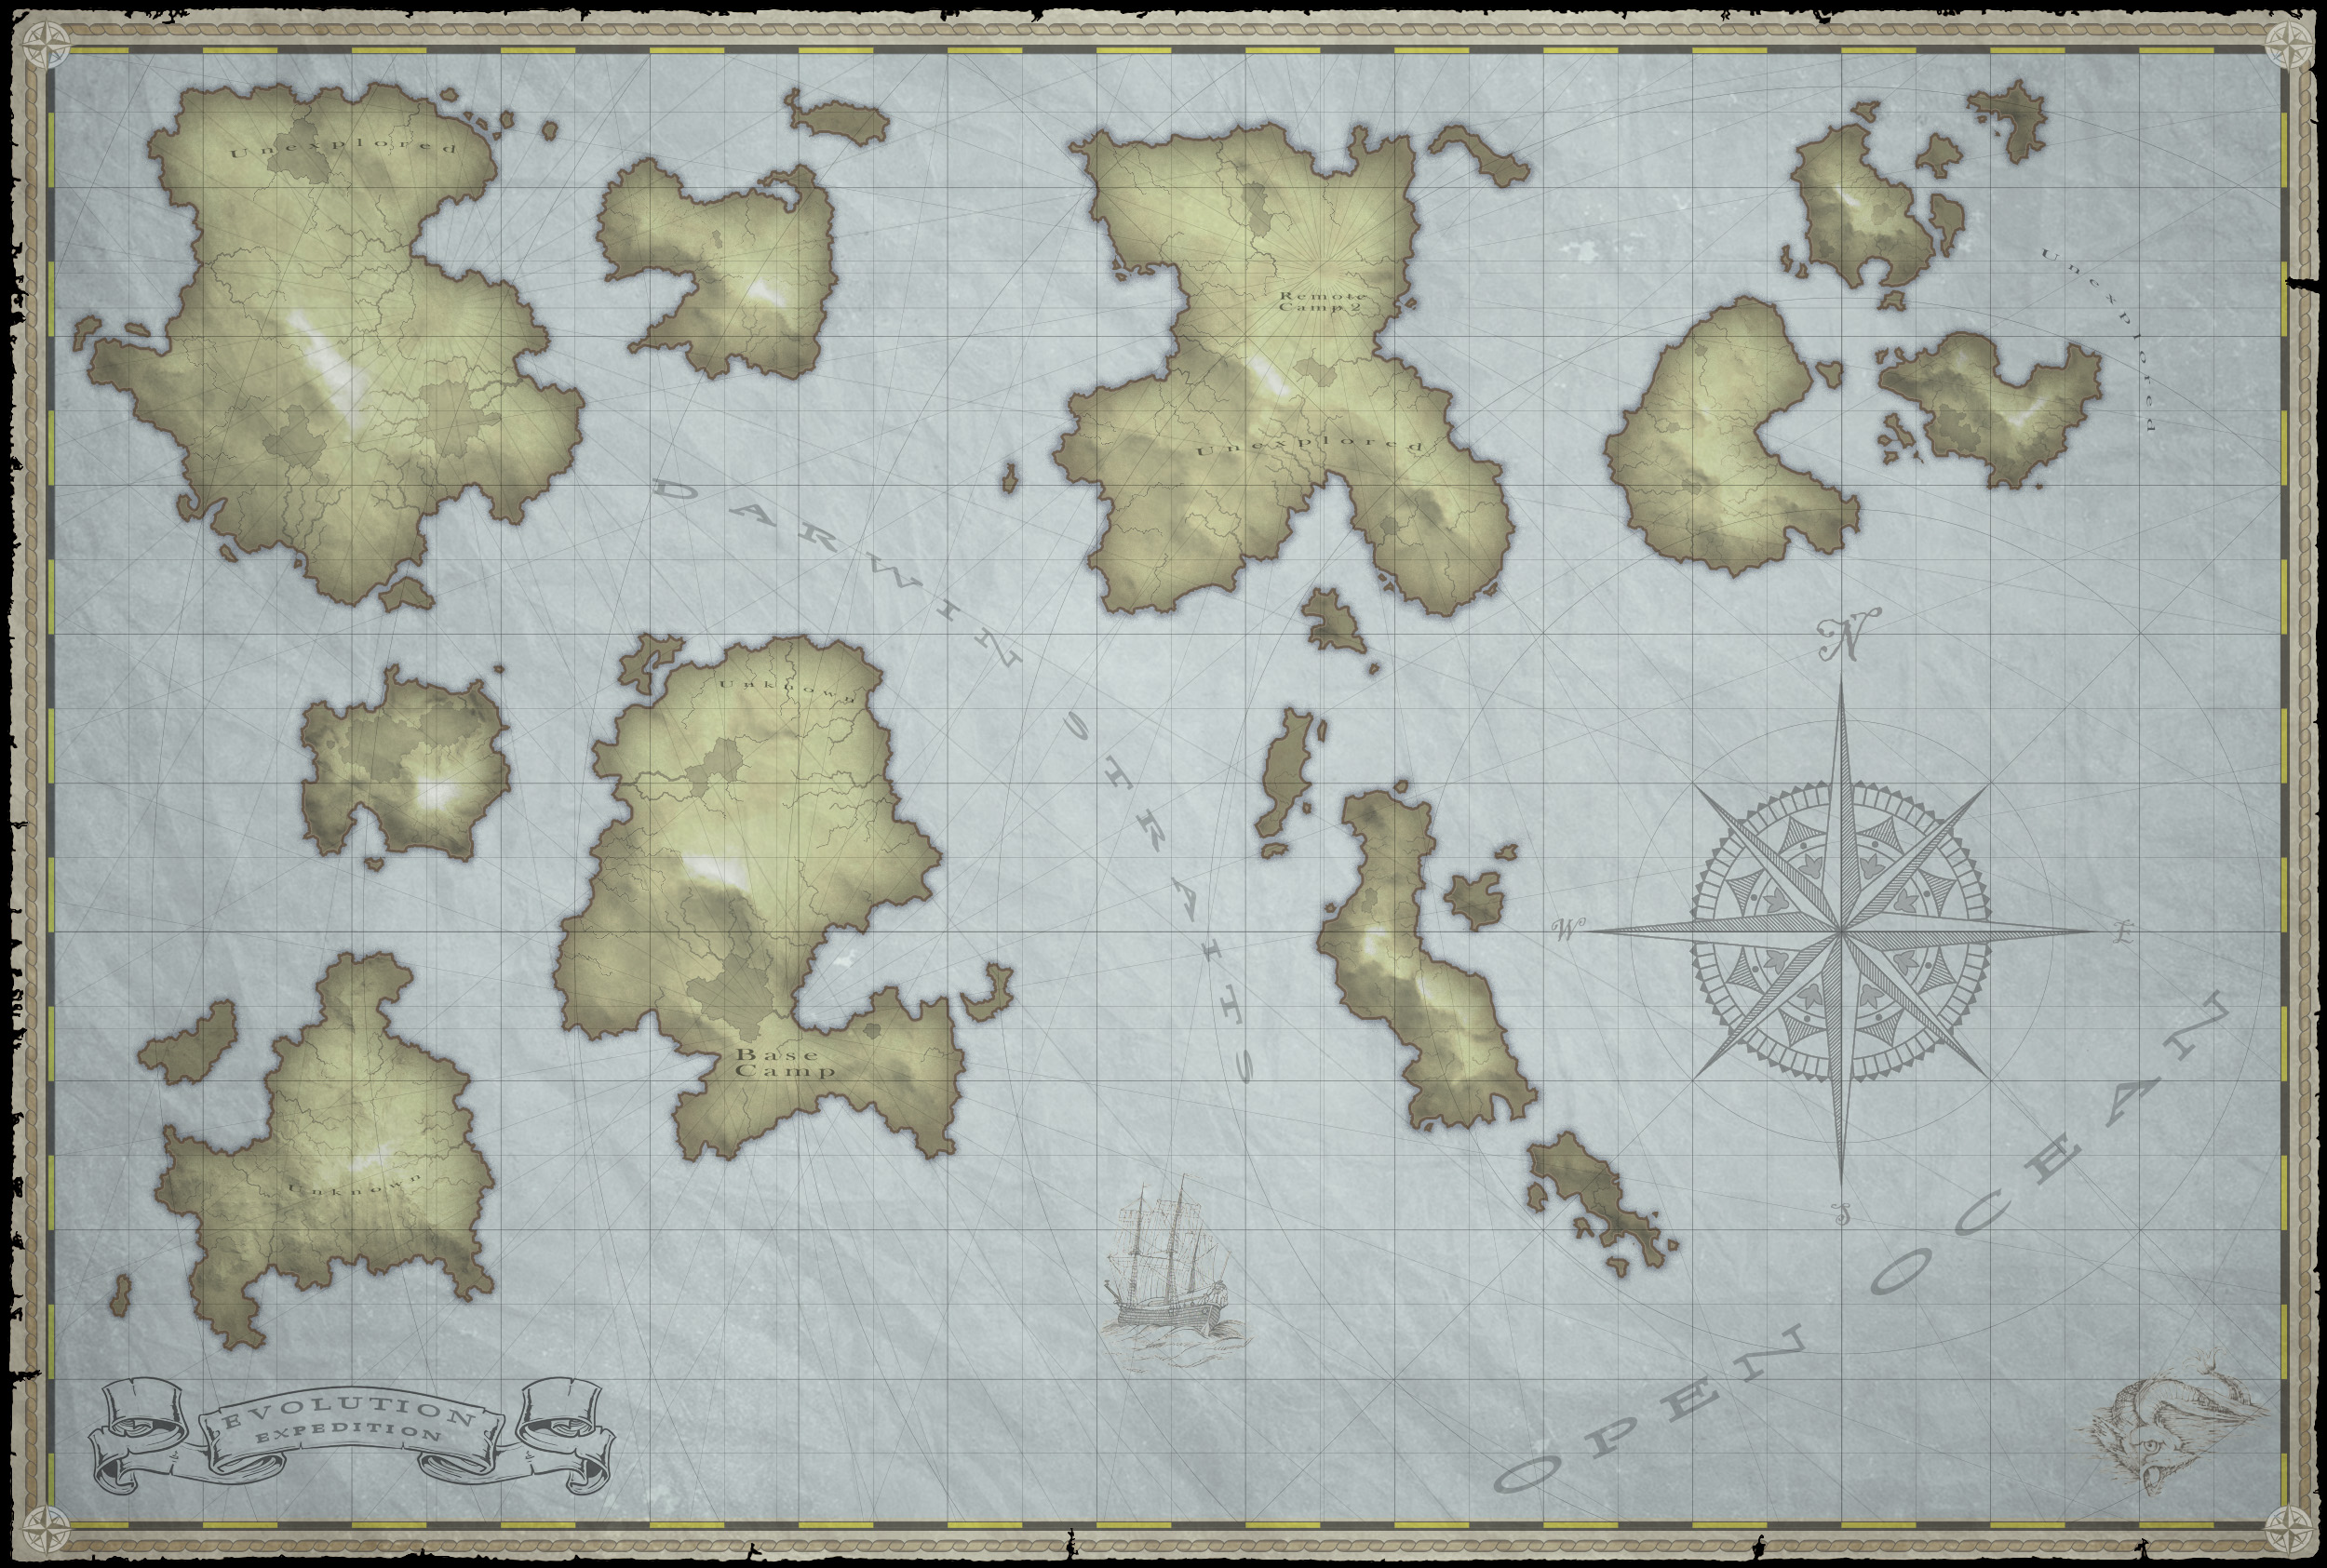 Old world map creation ibuild3d this was a project where i needed to generate a random but realistic old world style map i was looking for a somewhat procedural way to generate islands gumiabroncs Choice Image